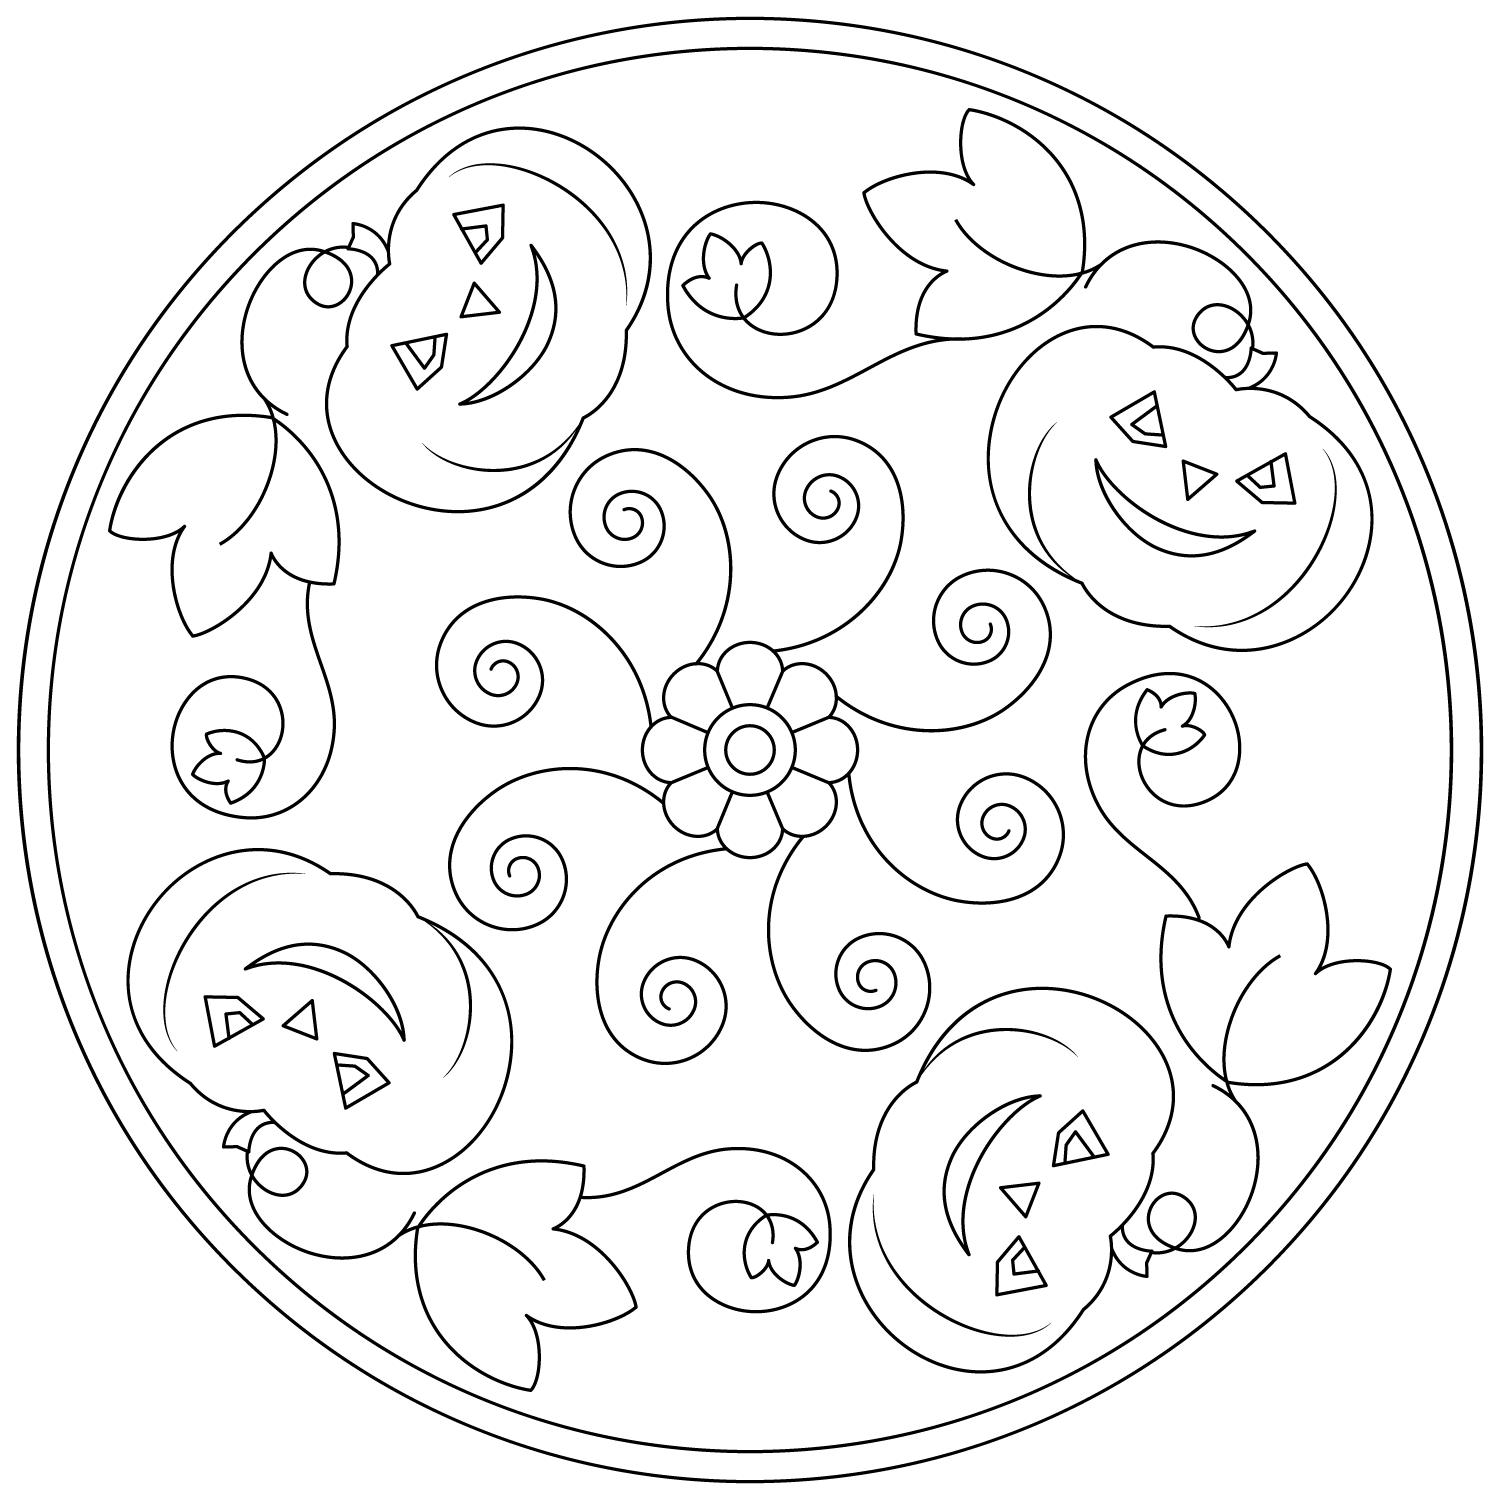 mandala halloween mandala coloring page halloween mandala coloring pages halloween mandala